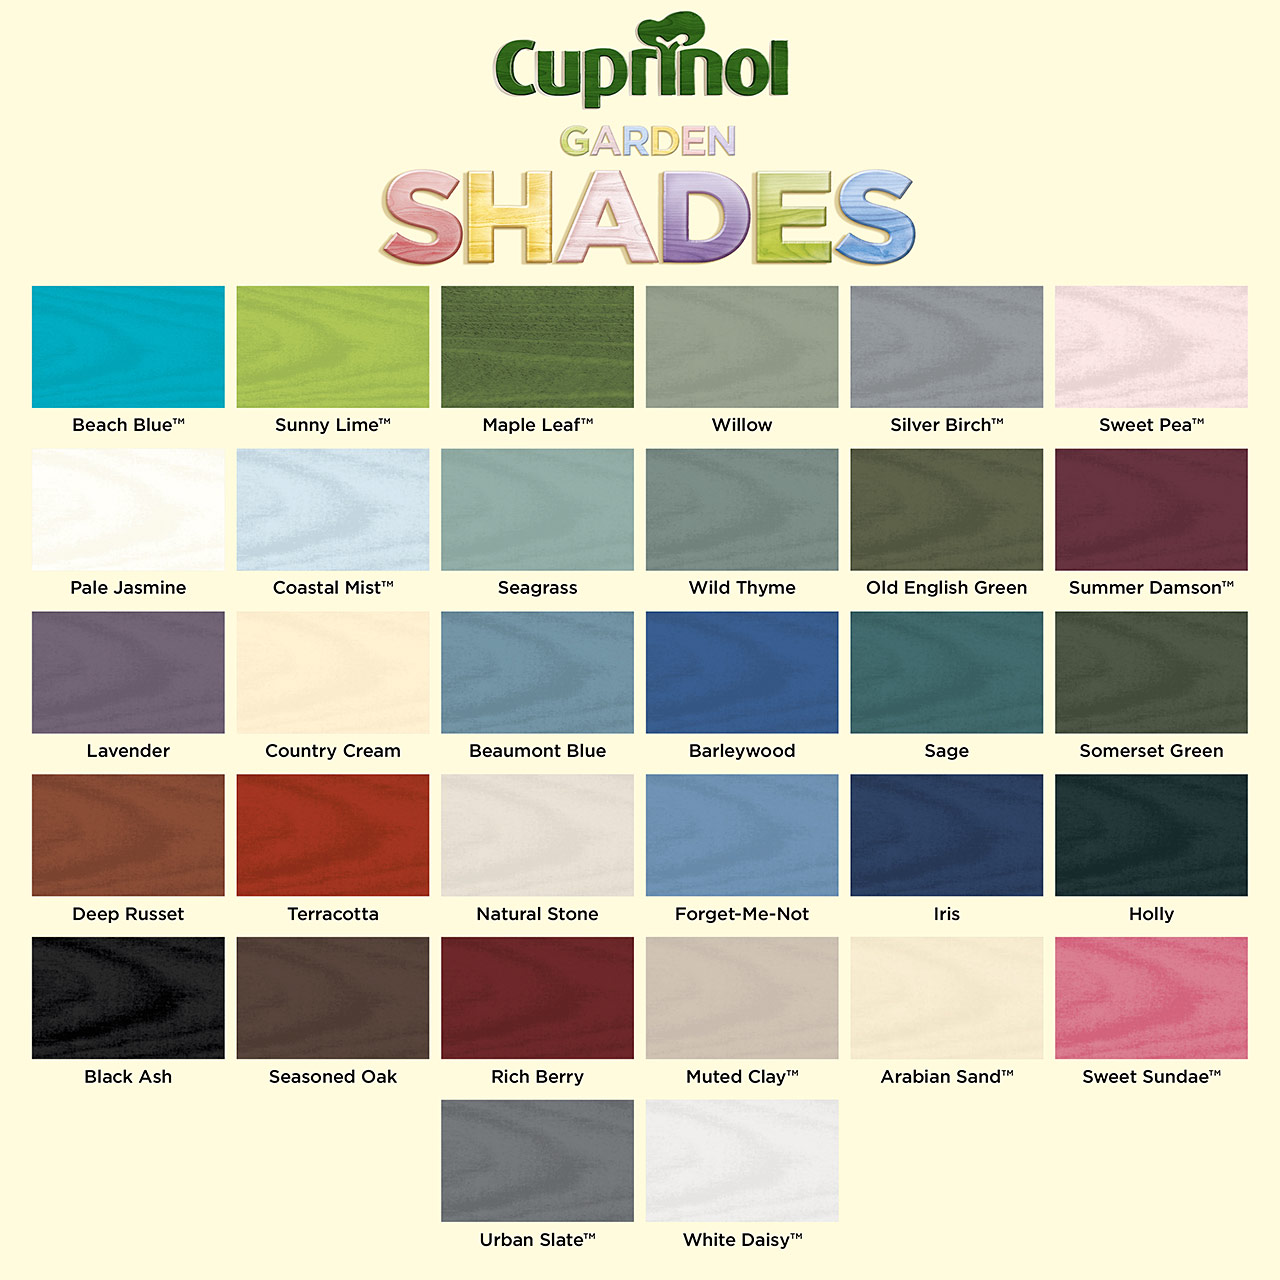 Cuprinol timbercare garden shades fixings tools tate fencing - Exterior wood paint colours uk concept ...